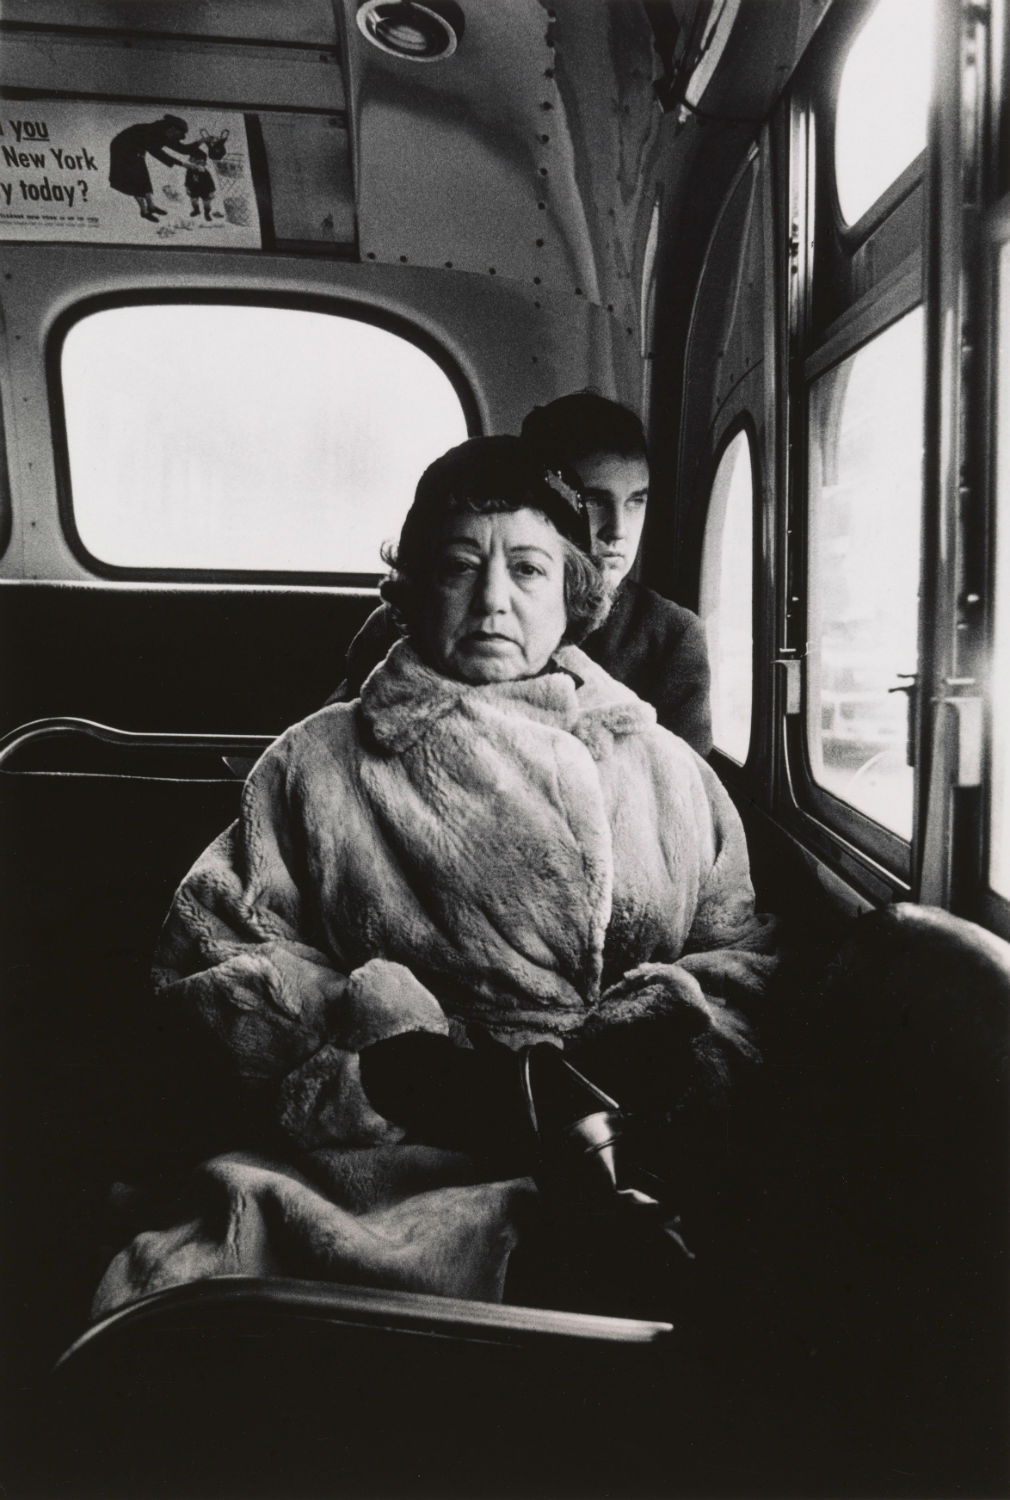 3.-Lady-on-a-bus-N.Y.C.-1957